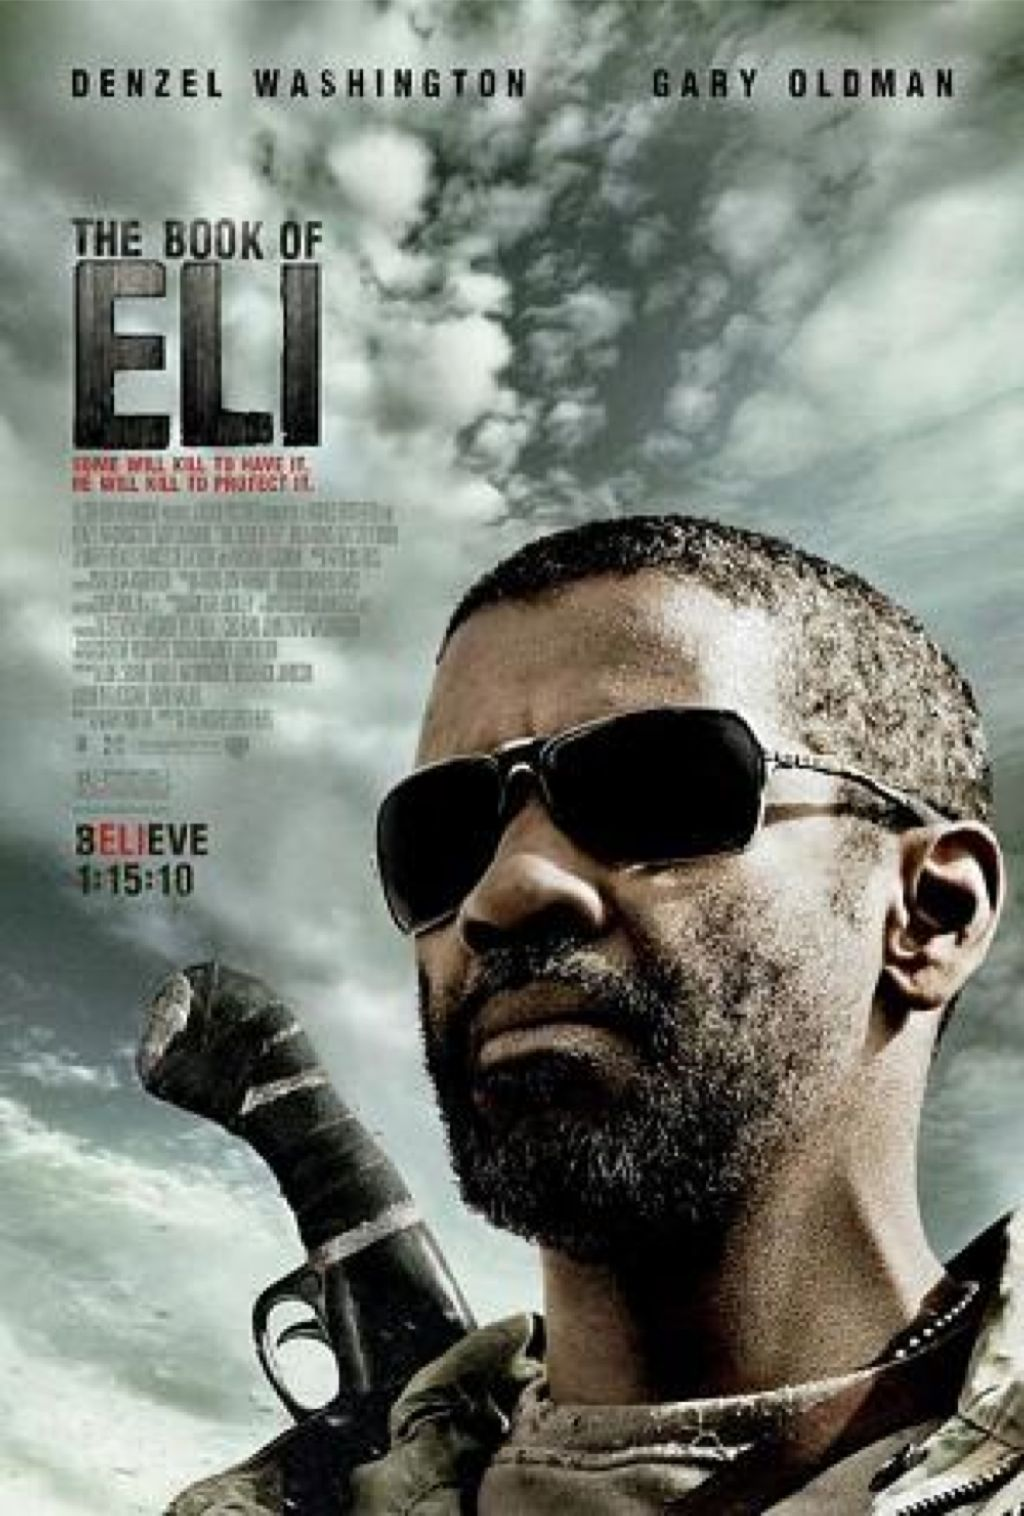 an analysis of biblical themes in the movie the book of eli